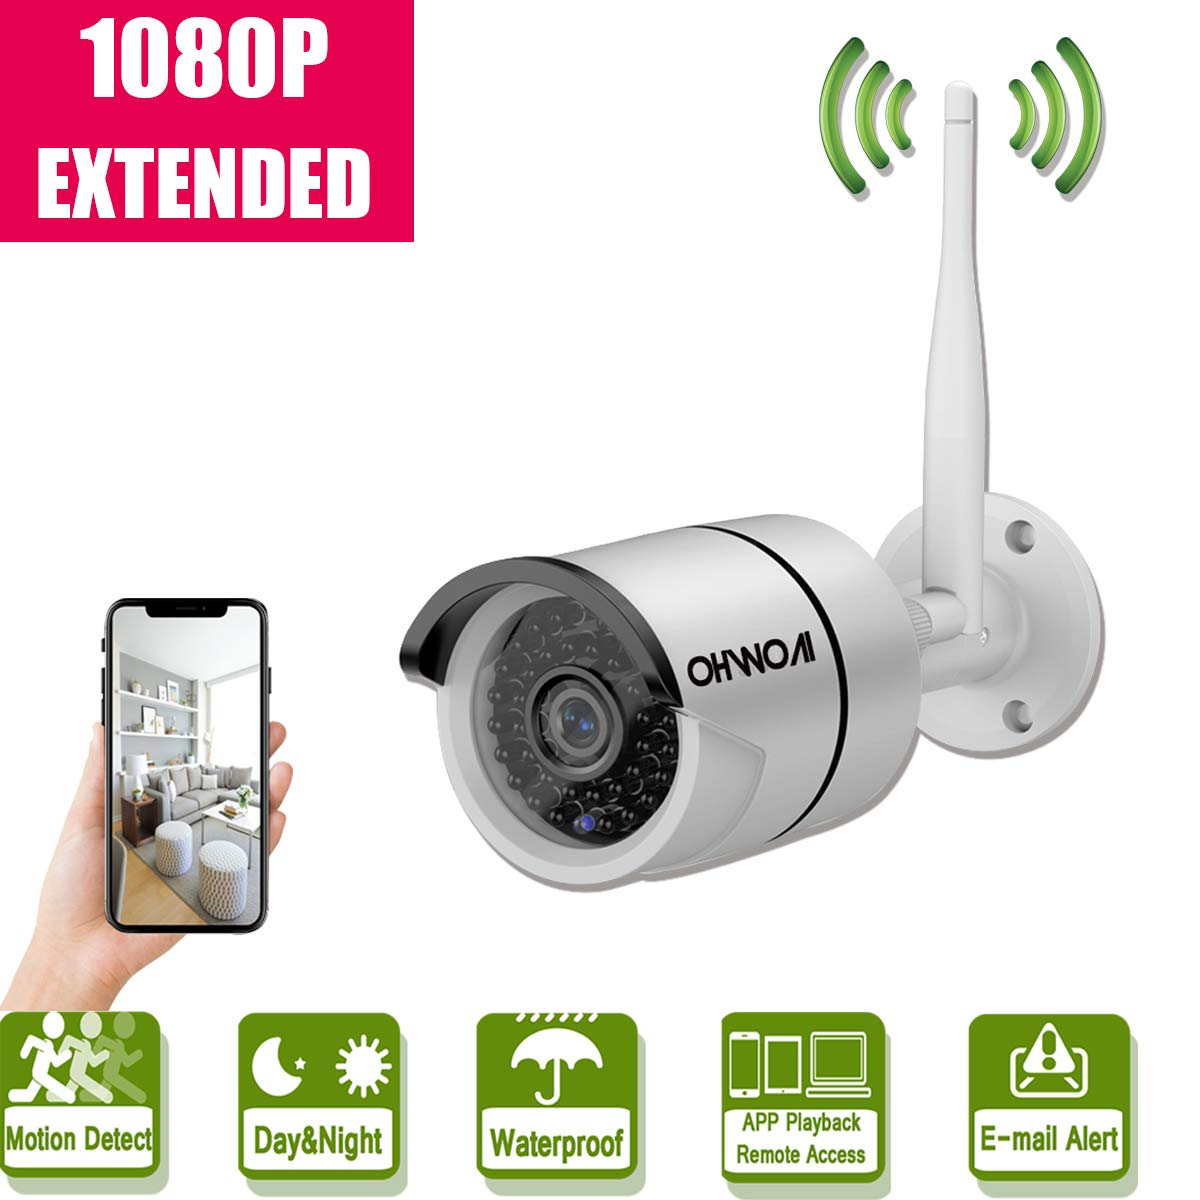 Wireless Security Camera Extend,1080P Full HD Home Surveillance IR LED Camera Extend for OHWOAI WiFi Kit,Indoors&Outdoors IP Camera with Weatherproof/Night Vision,Work for OHWOAI.